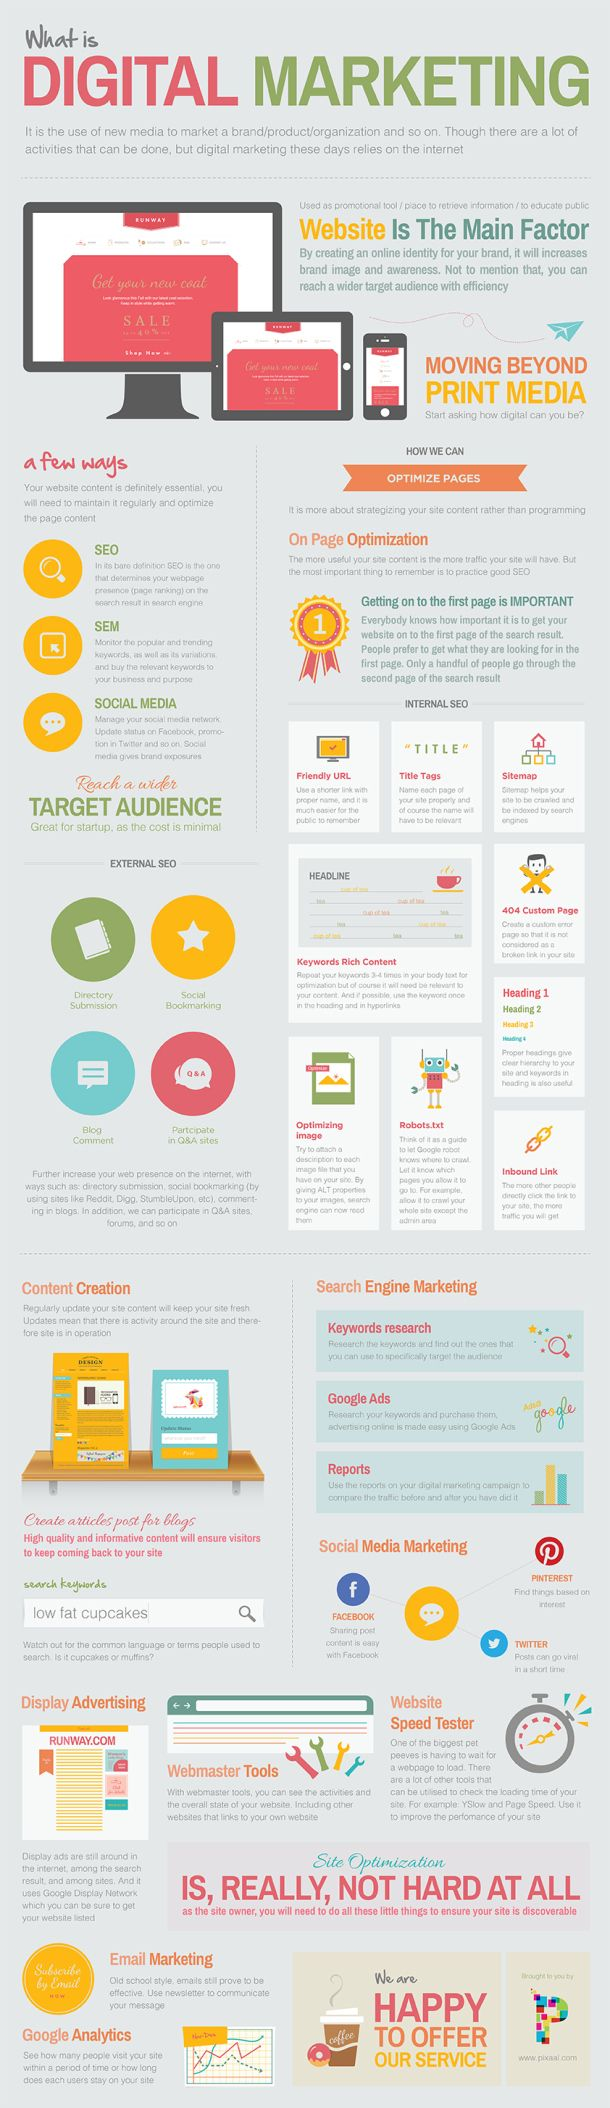 Digital Marketing in Summary for those who want start their Digital Marketing Activities # Digital Marketing Indonesia